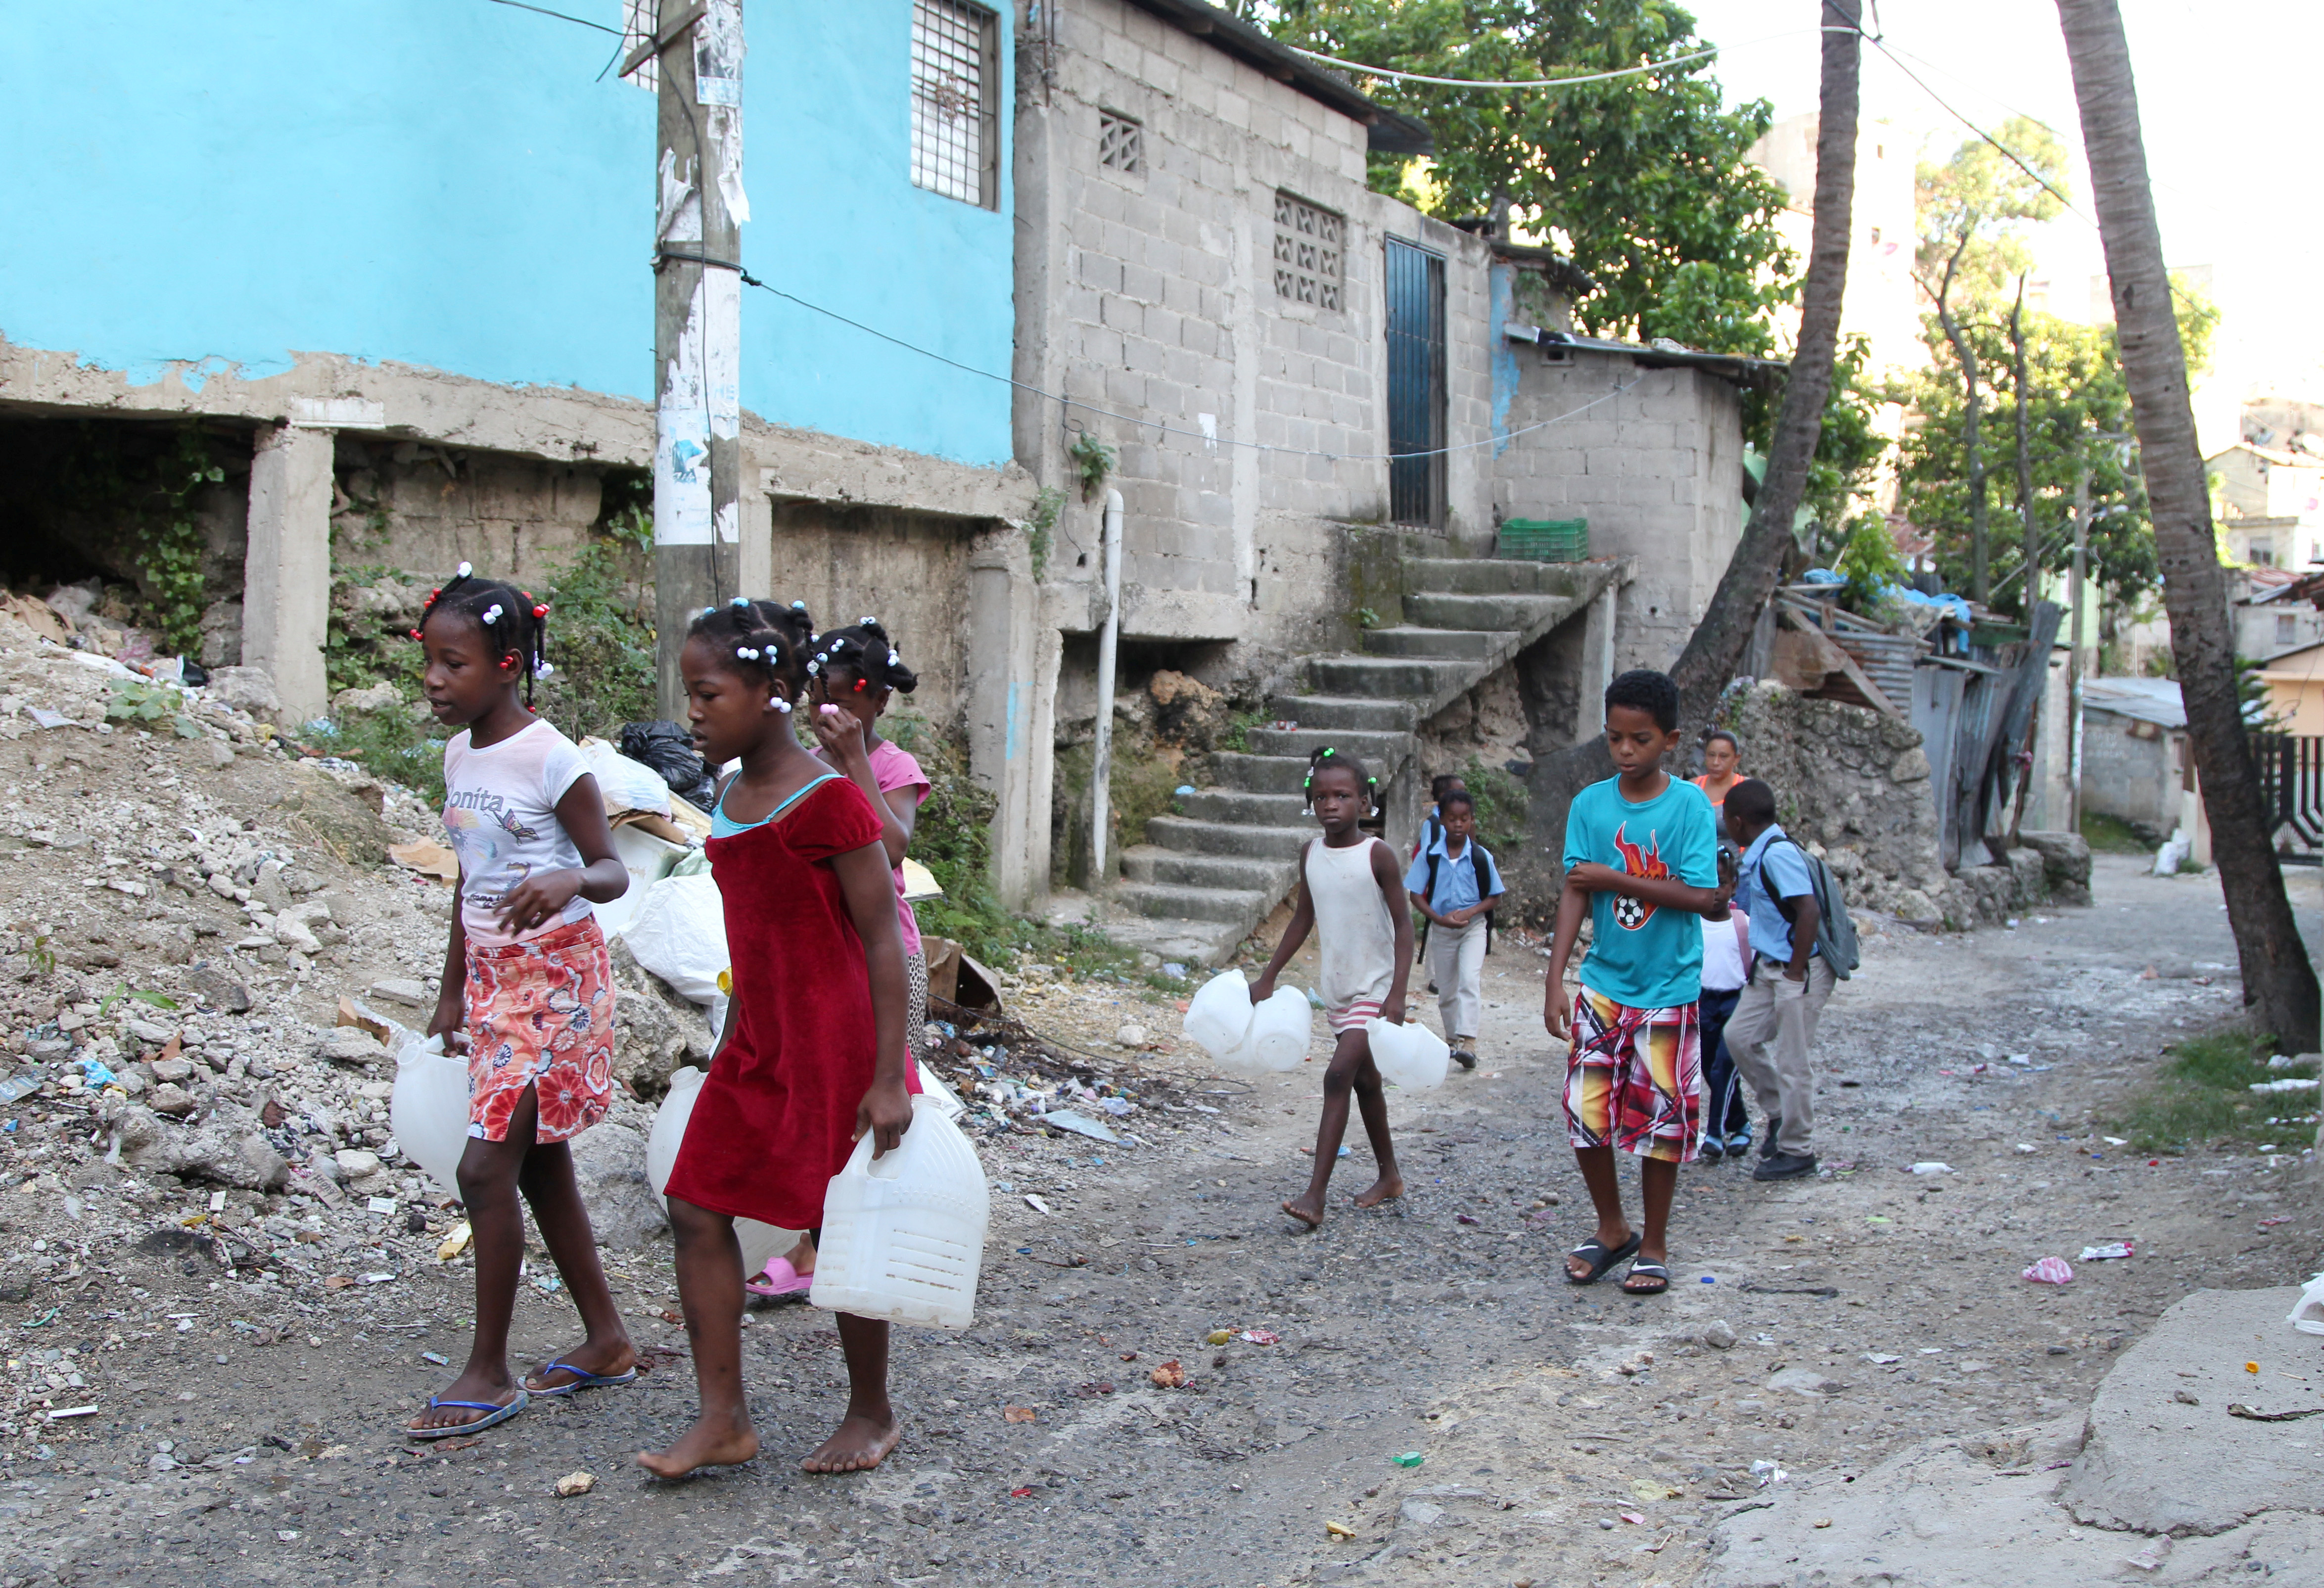 Children carry containers for water as Hurricane Irma slammed across islands in the northern Caribbean on Wednesday in Santo Domingo, Dominican Republic.